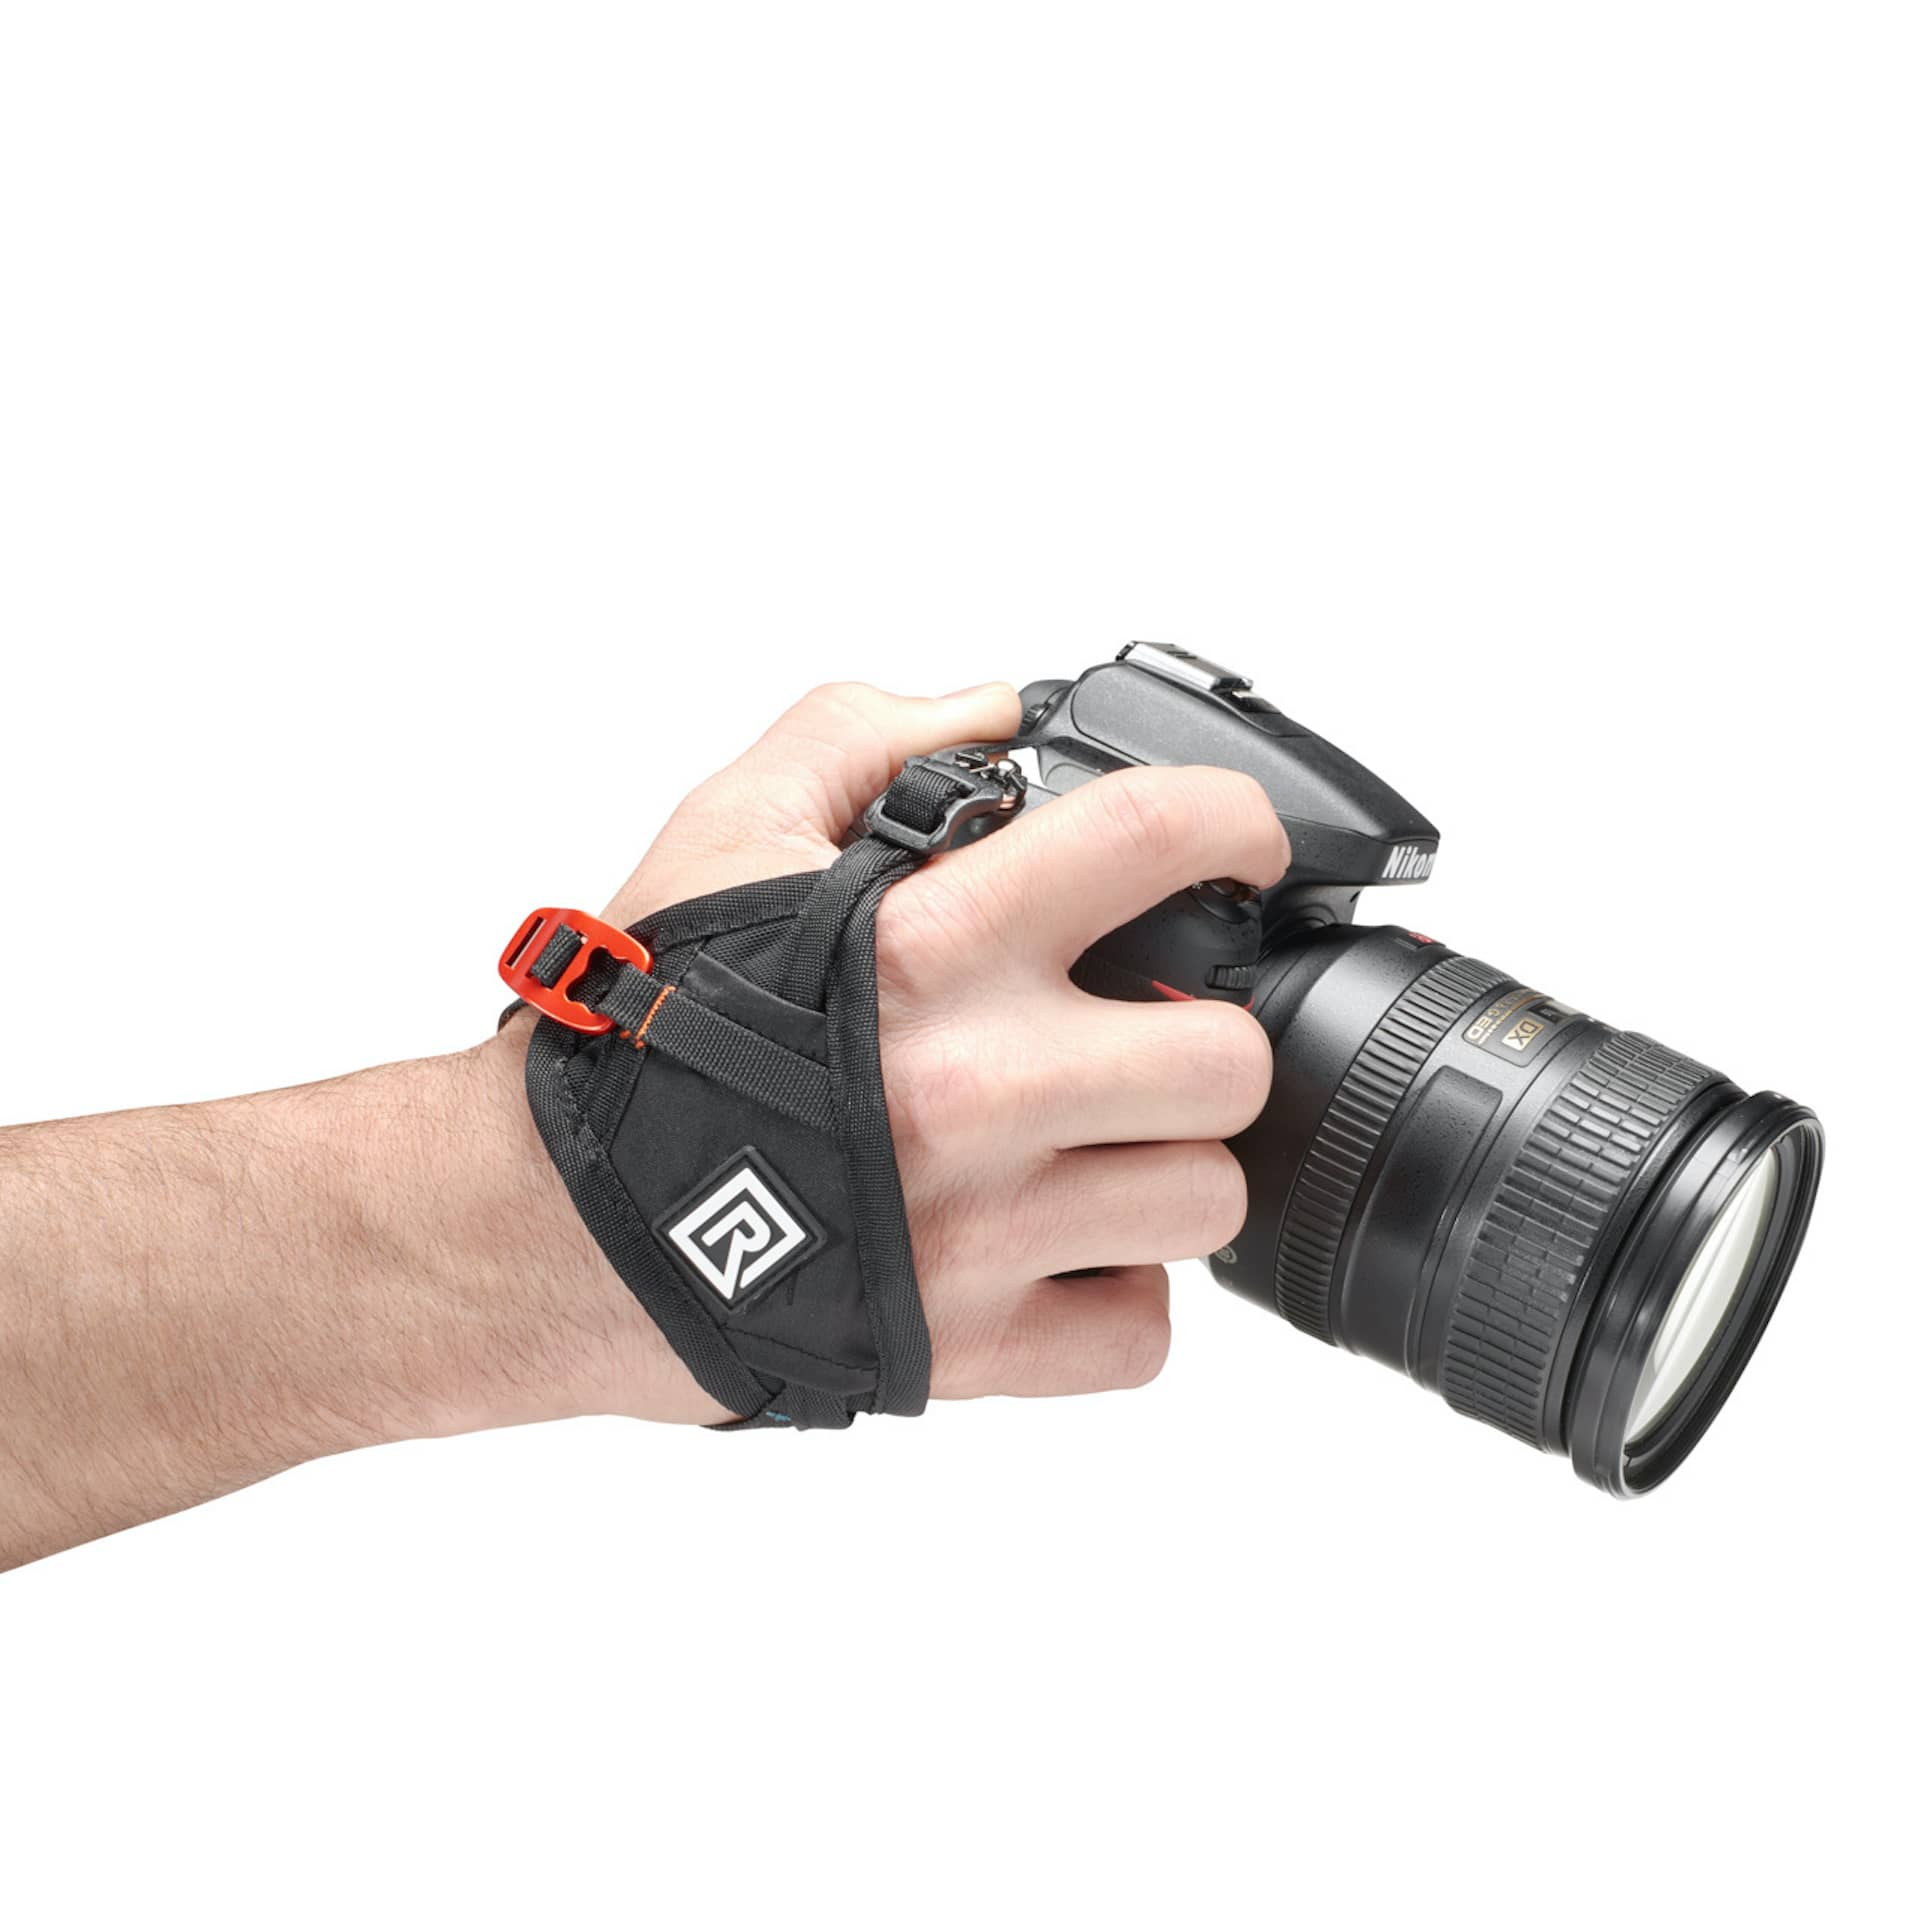 Best Photo Gifts for Photographers - Ideas Photographer Lovers - Rapid Hand Camera Strap Holder